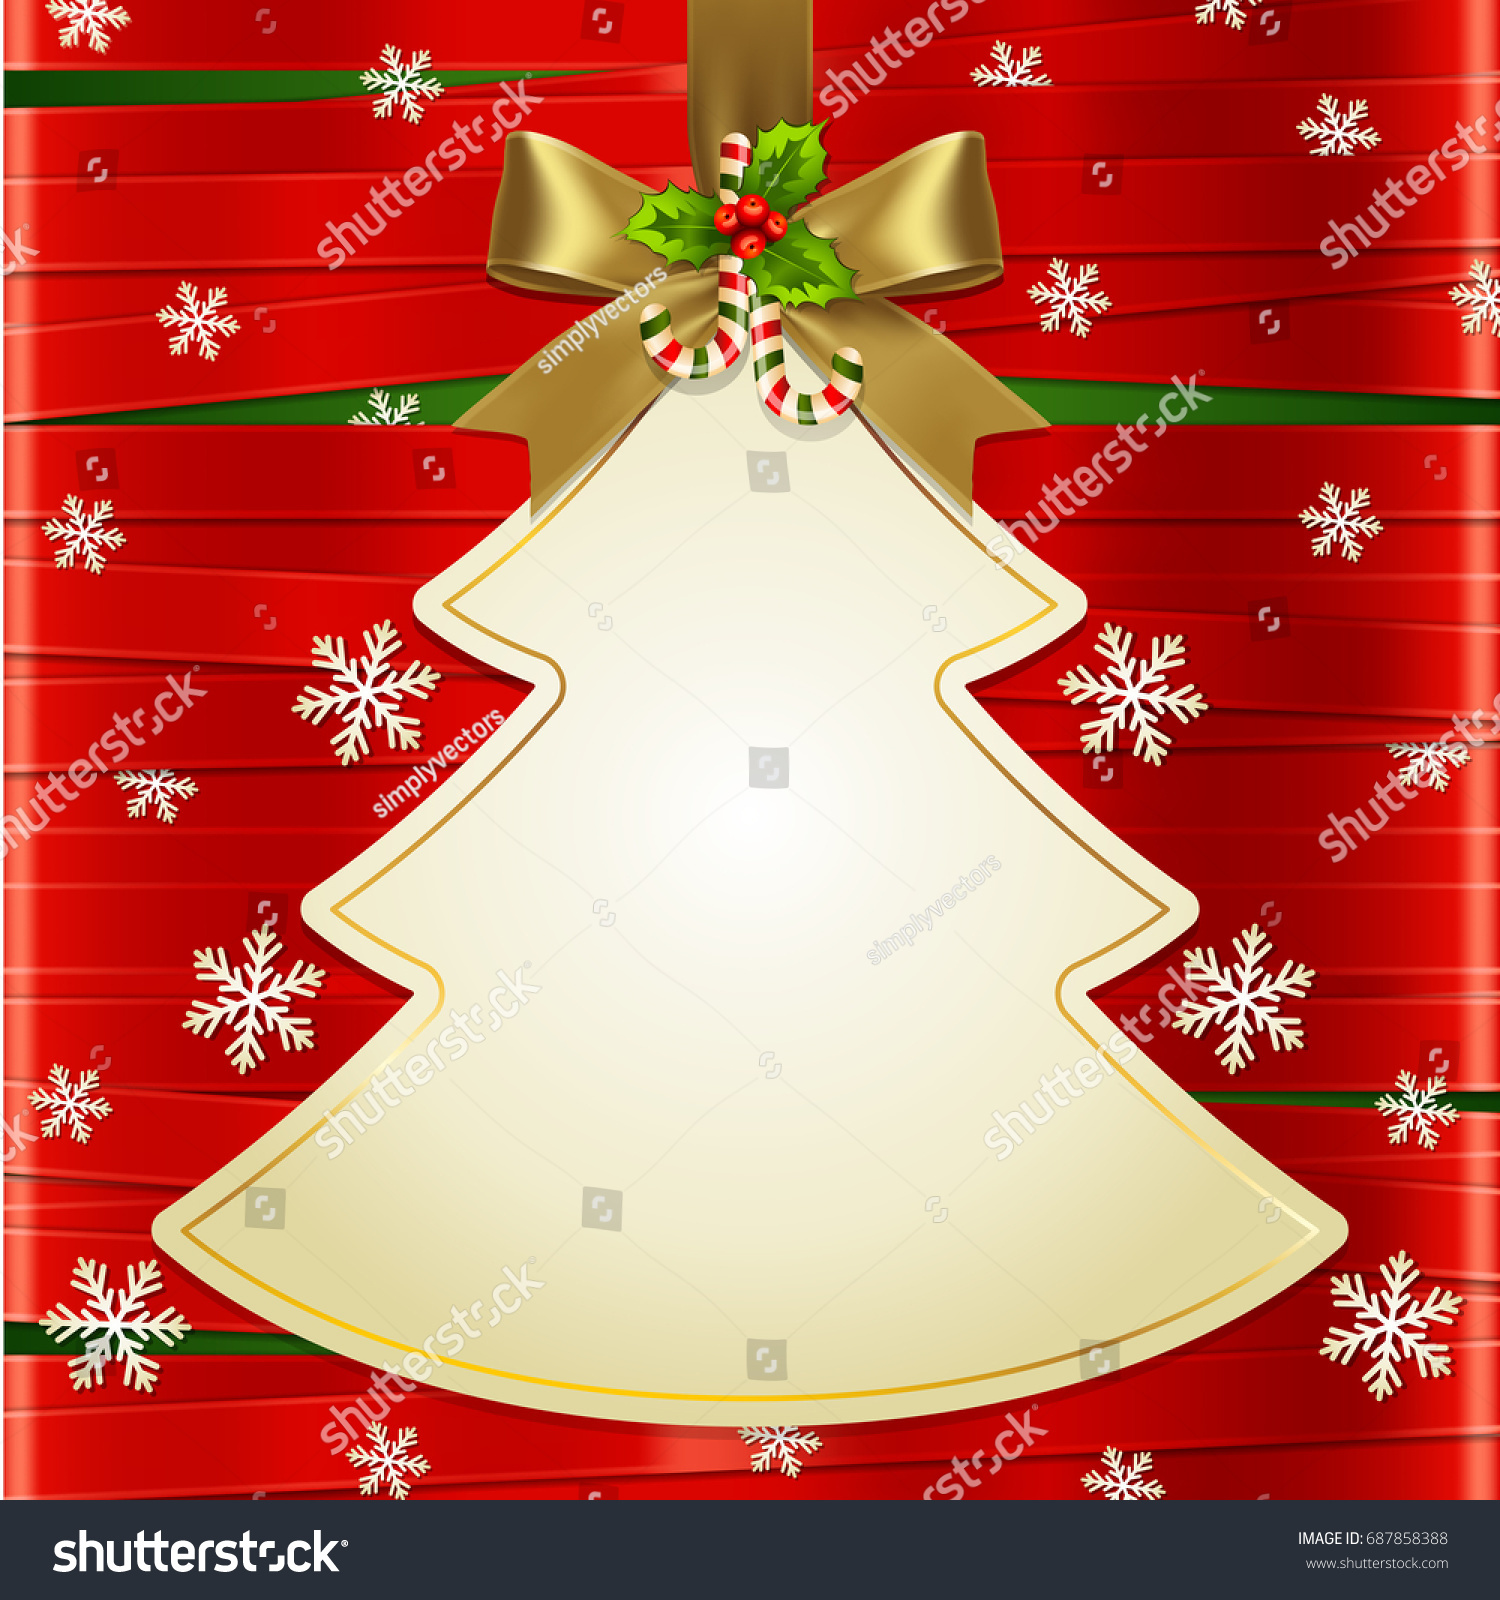 Christmas Tree With Red Ribbon: Gold Ribbon Bow Hanged Christmas Tree Stock Vector